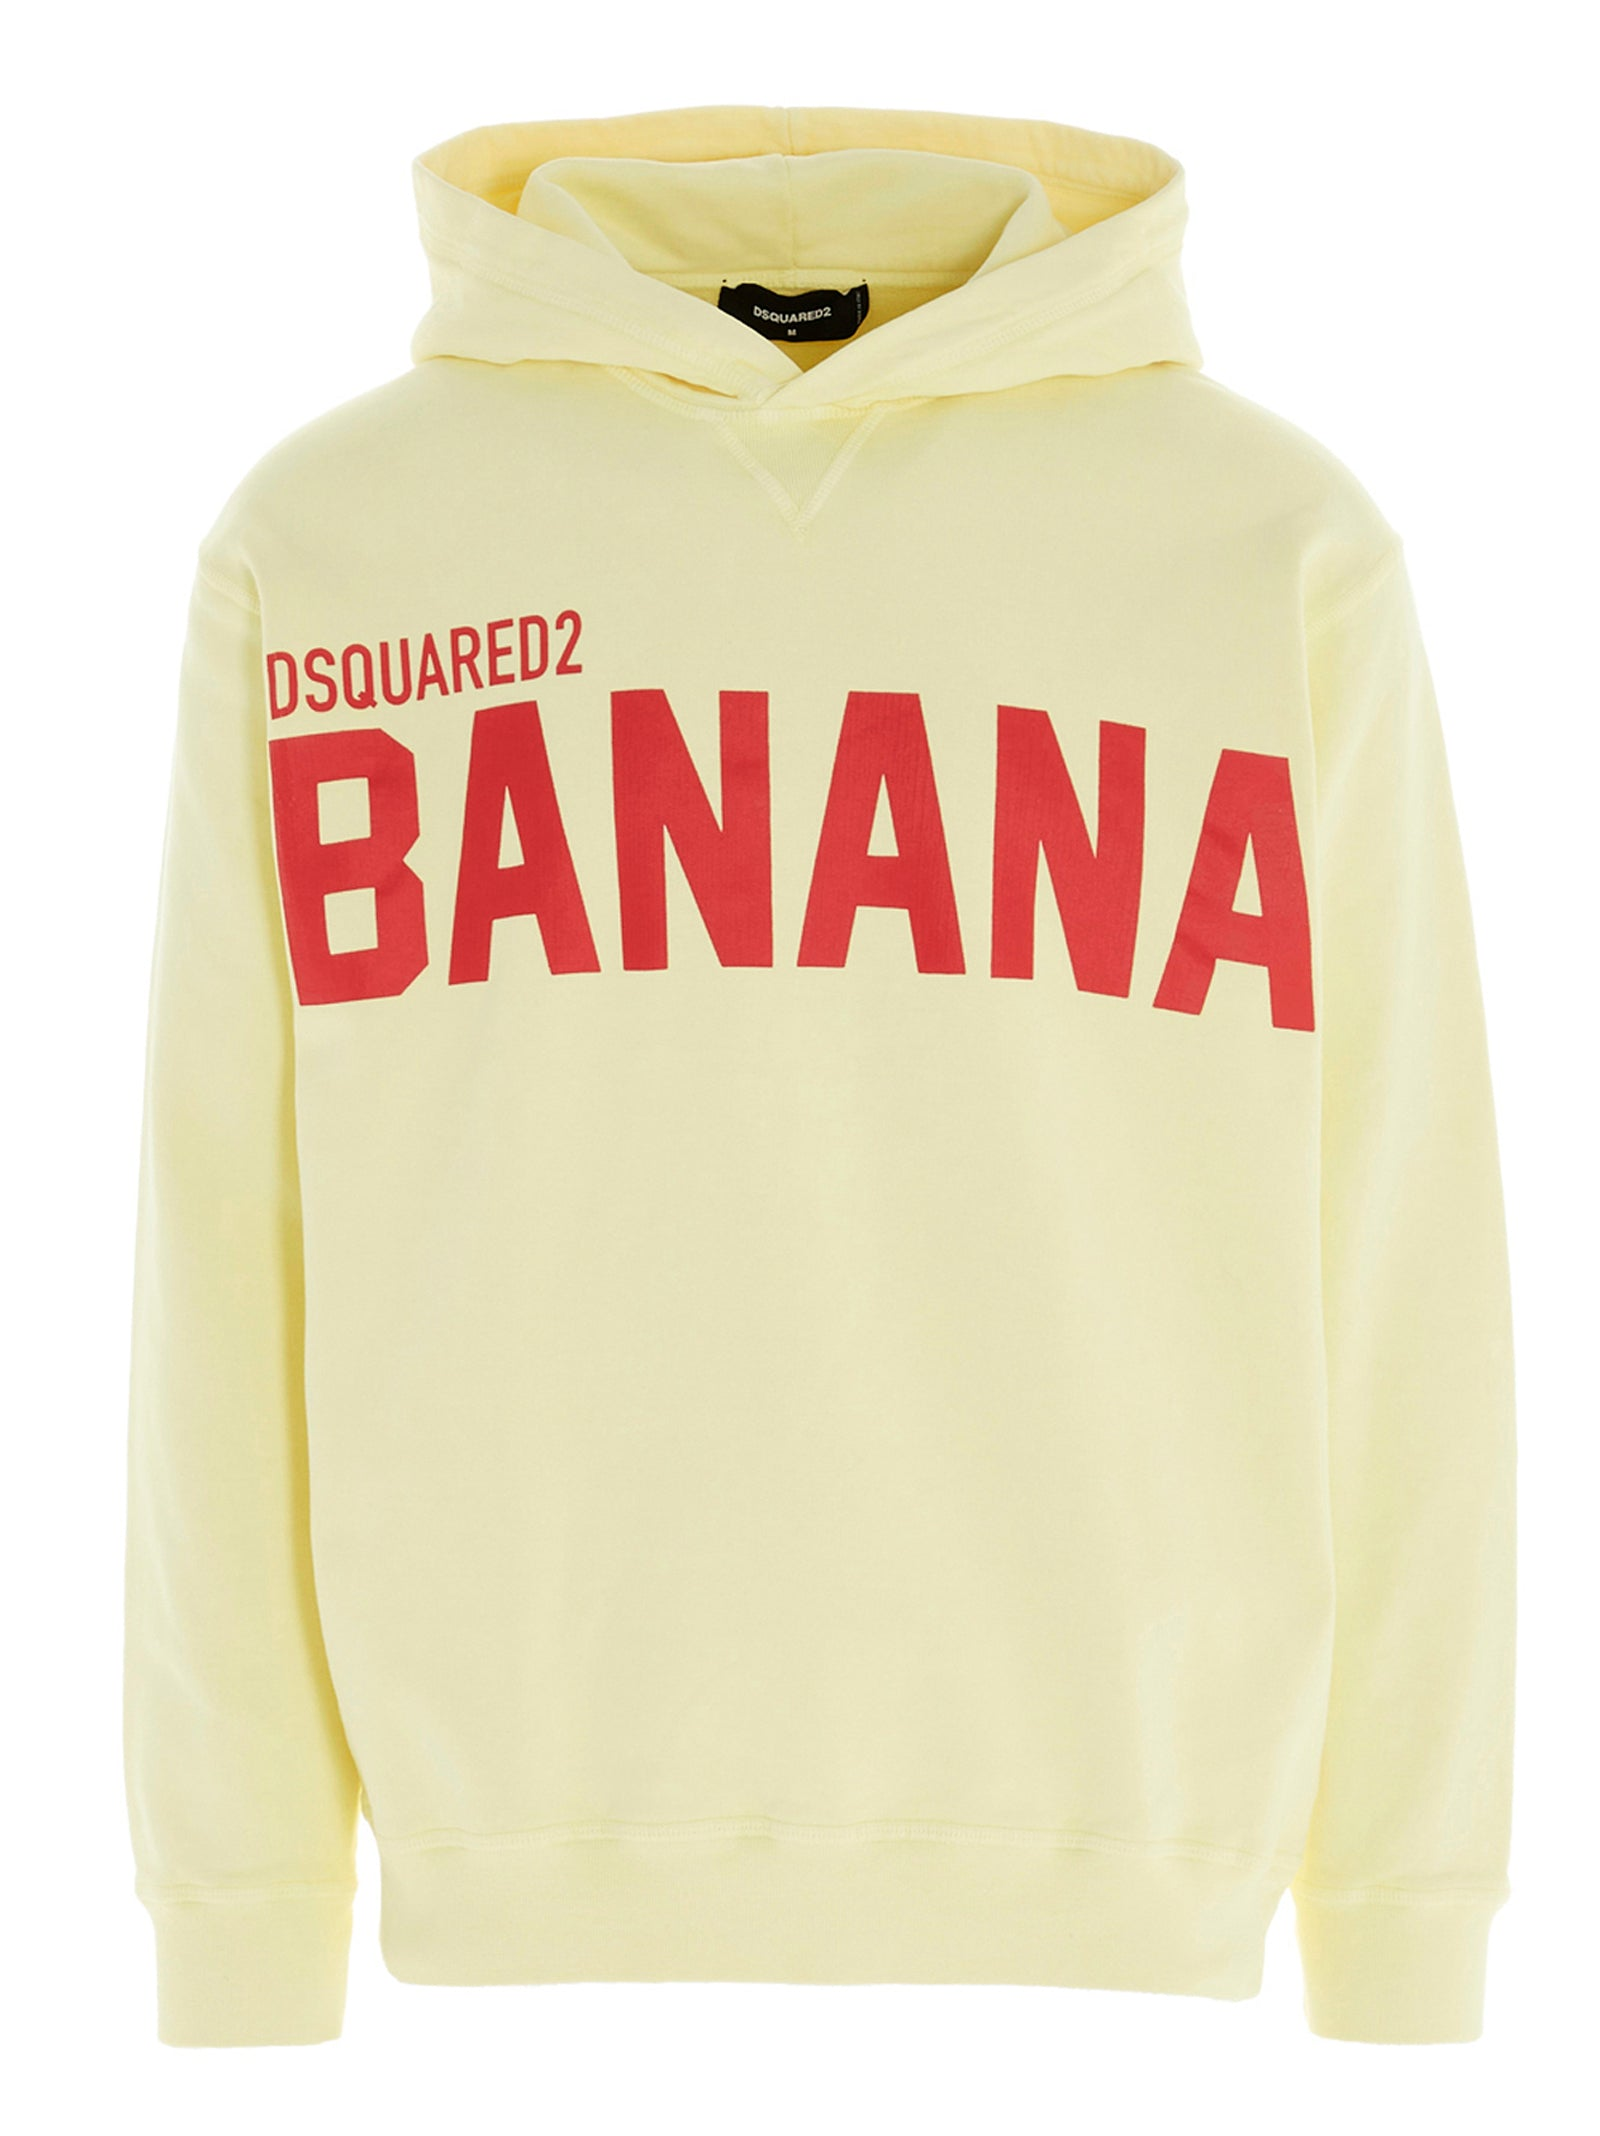 Dsquared2 Cottons DSQUARED2 BANANA PRINT HOODIE